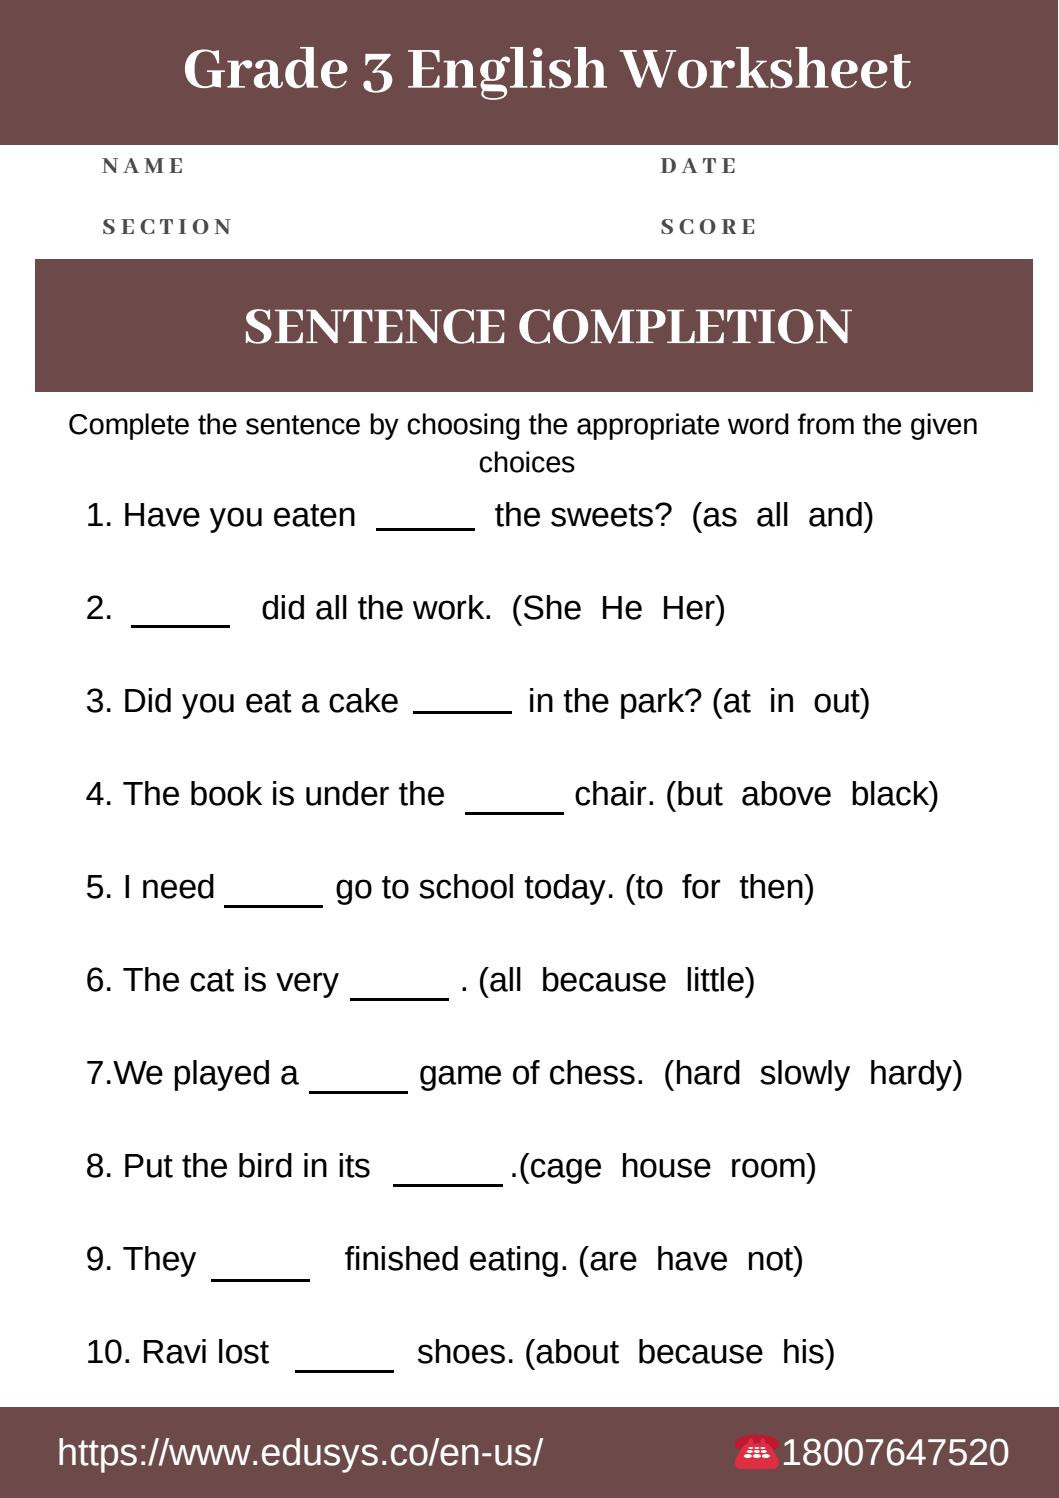 9th Grade Grammar Worksheets Pdf 3rd Grade English Grammar Worksheet Free Pdf by Nithya issuu